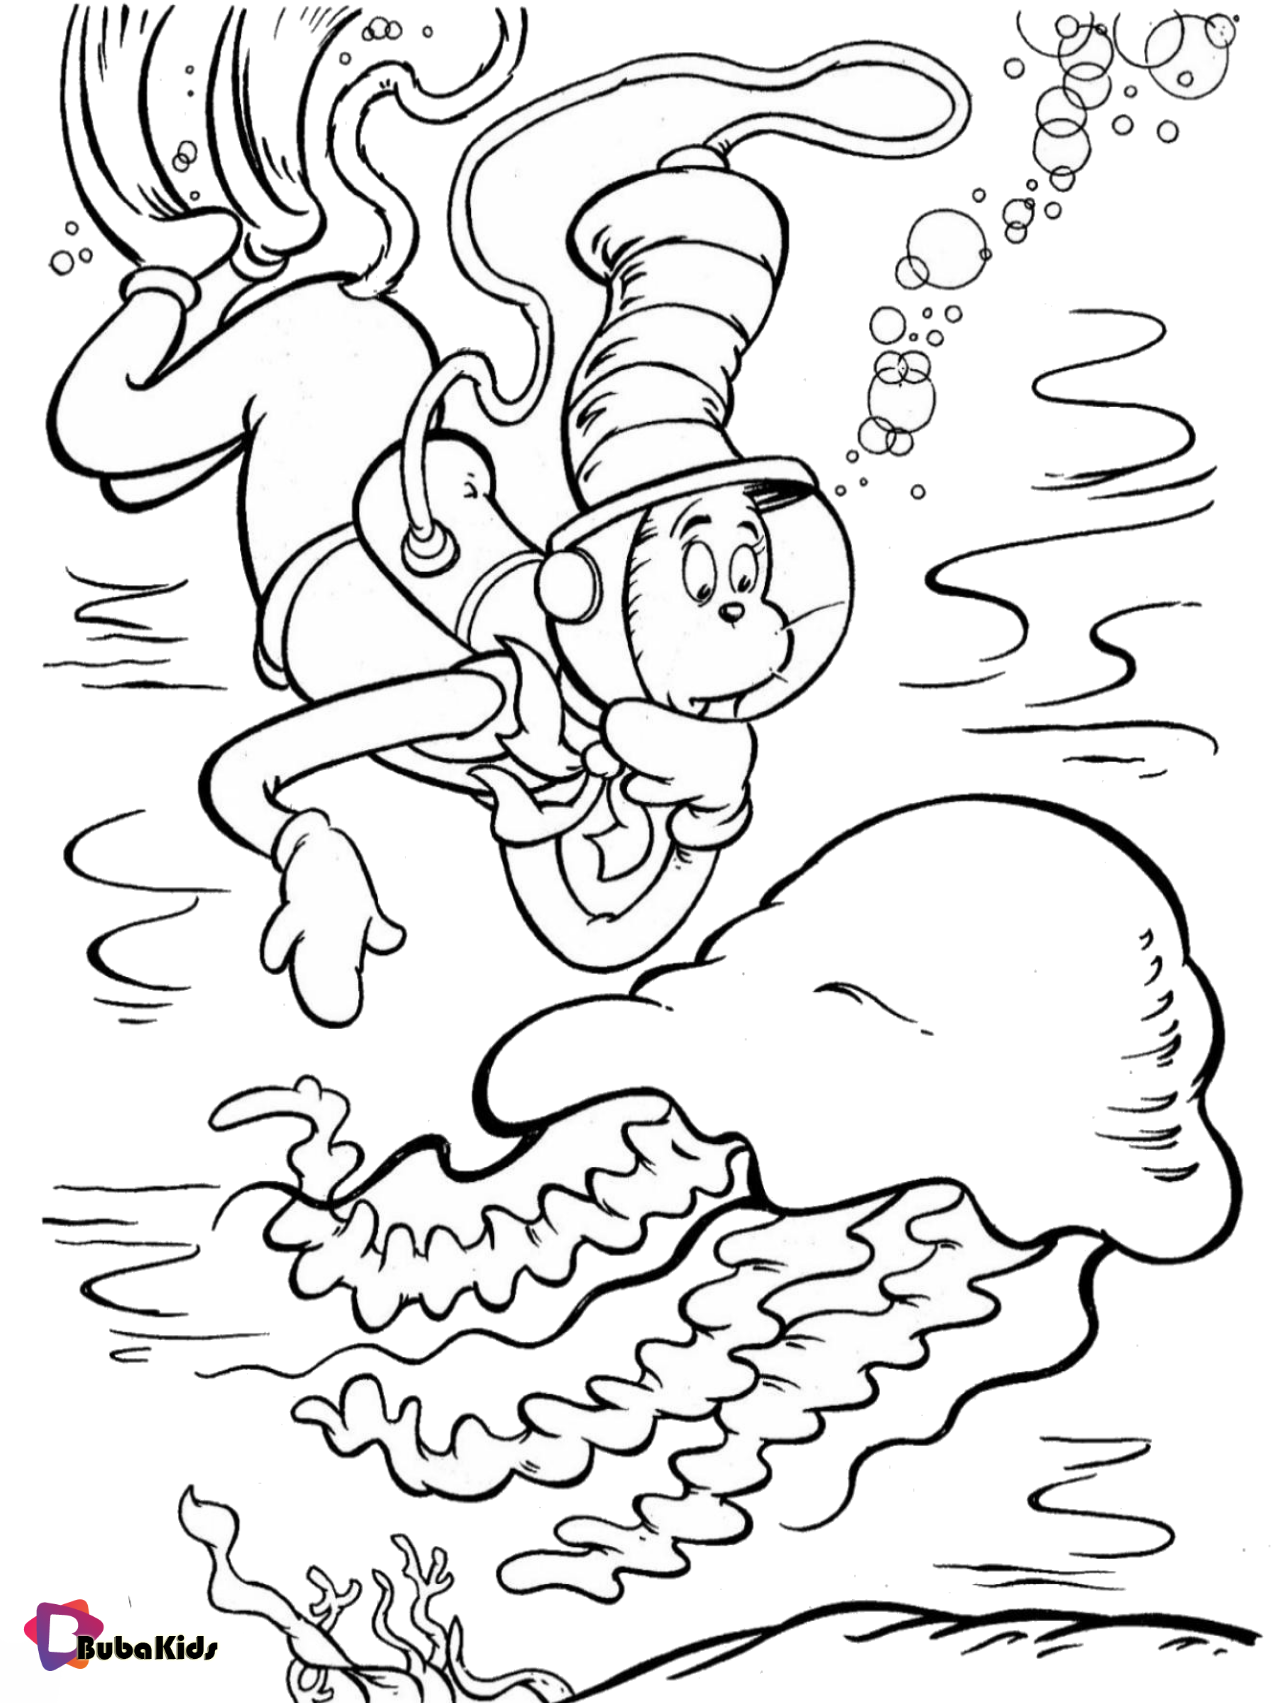 Dr Seuss The Cat In The Hat Jellyfish Coloring Page In